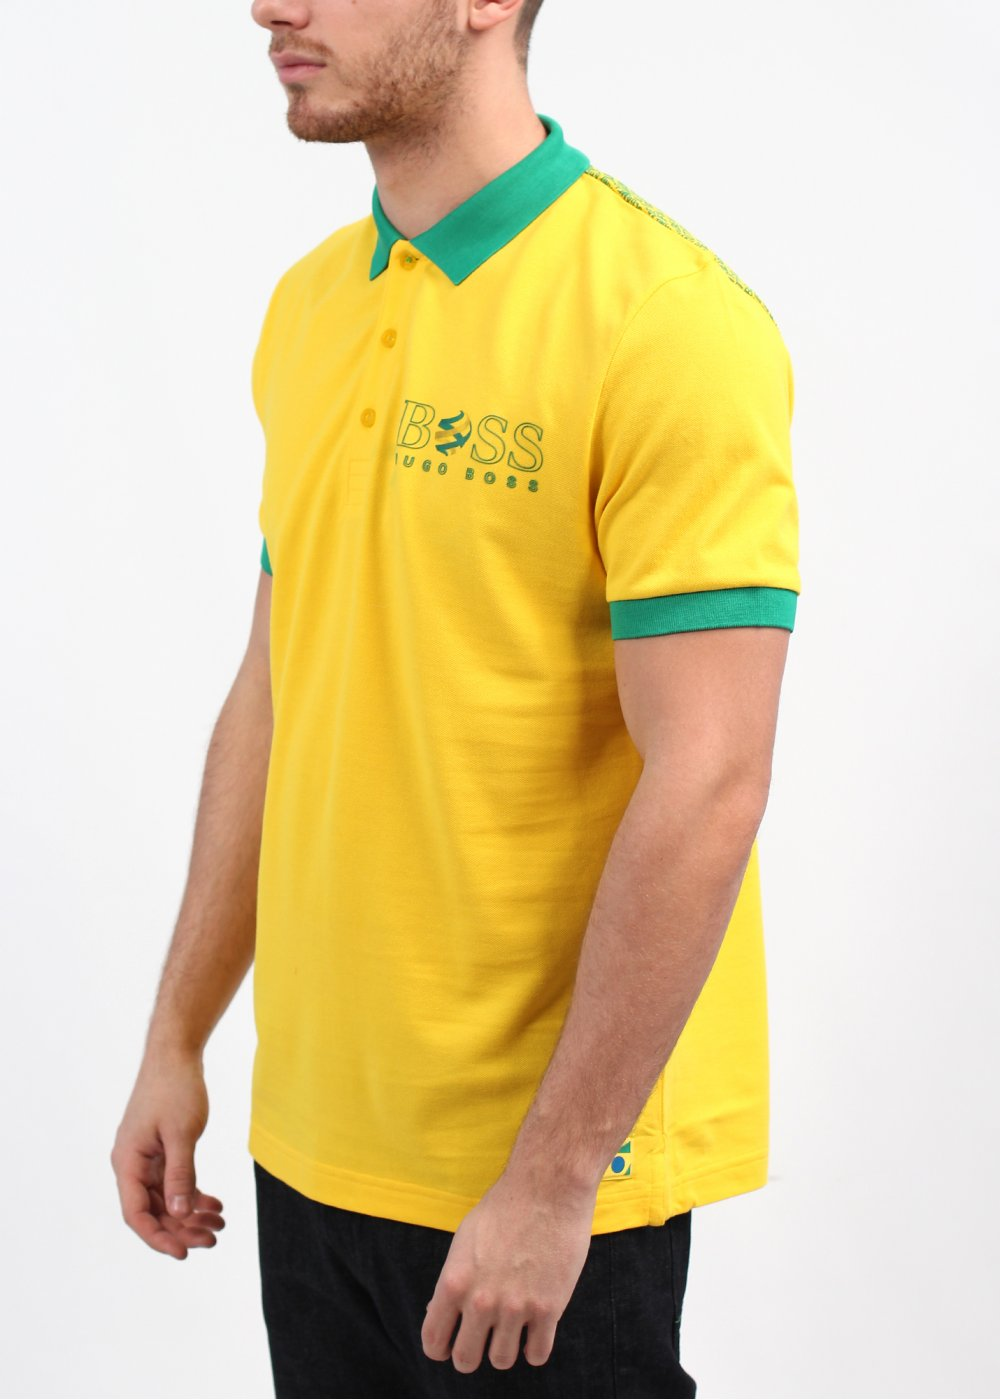 Hugo Boss Green Brazil WC Paddy Polo Shirt - Yellow   Green 6b3061d70